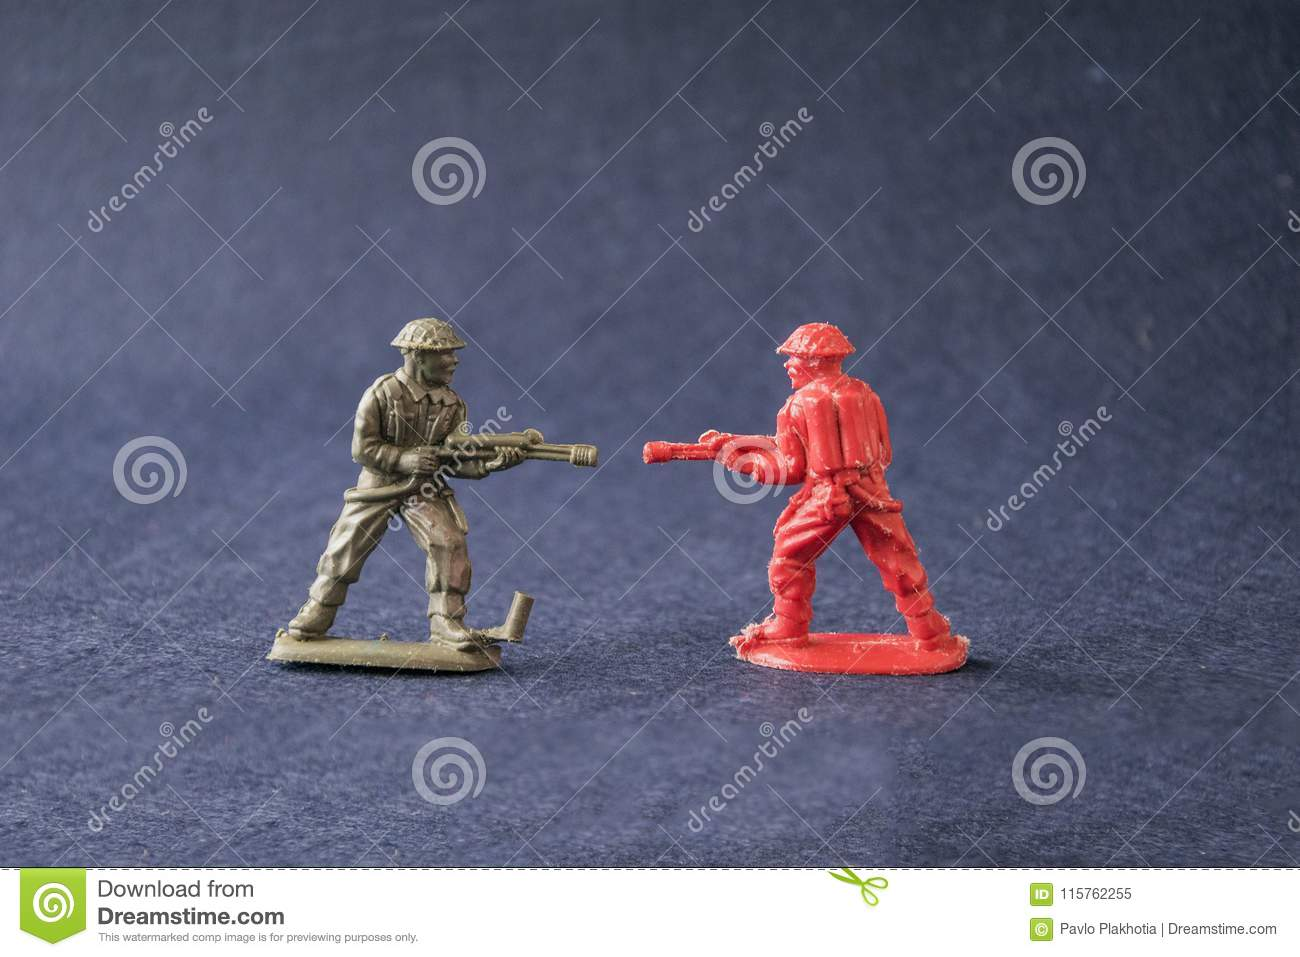 Miniature Of Fighting Toy Model Soldiers Stock Image - Image of